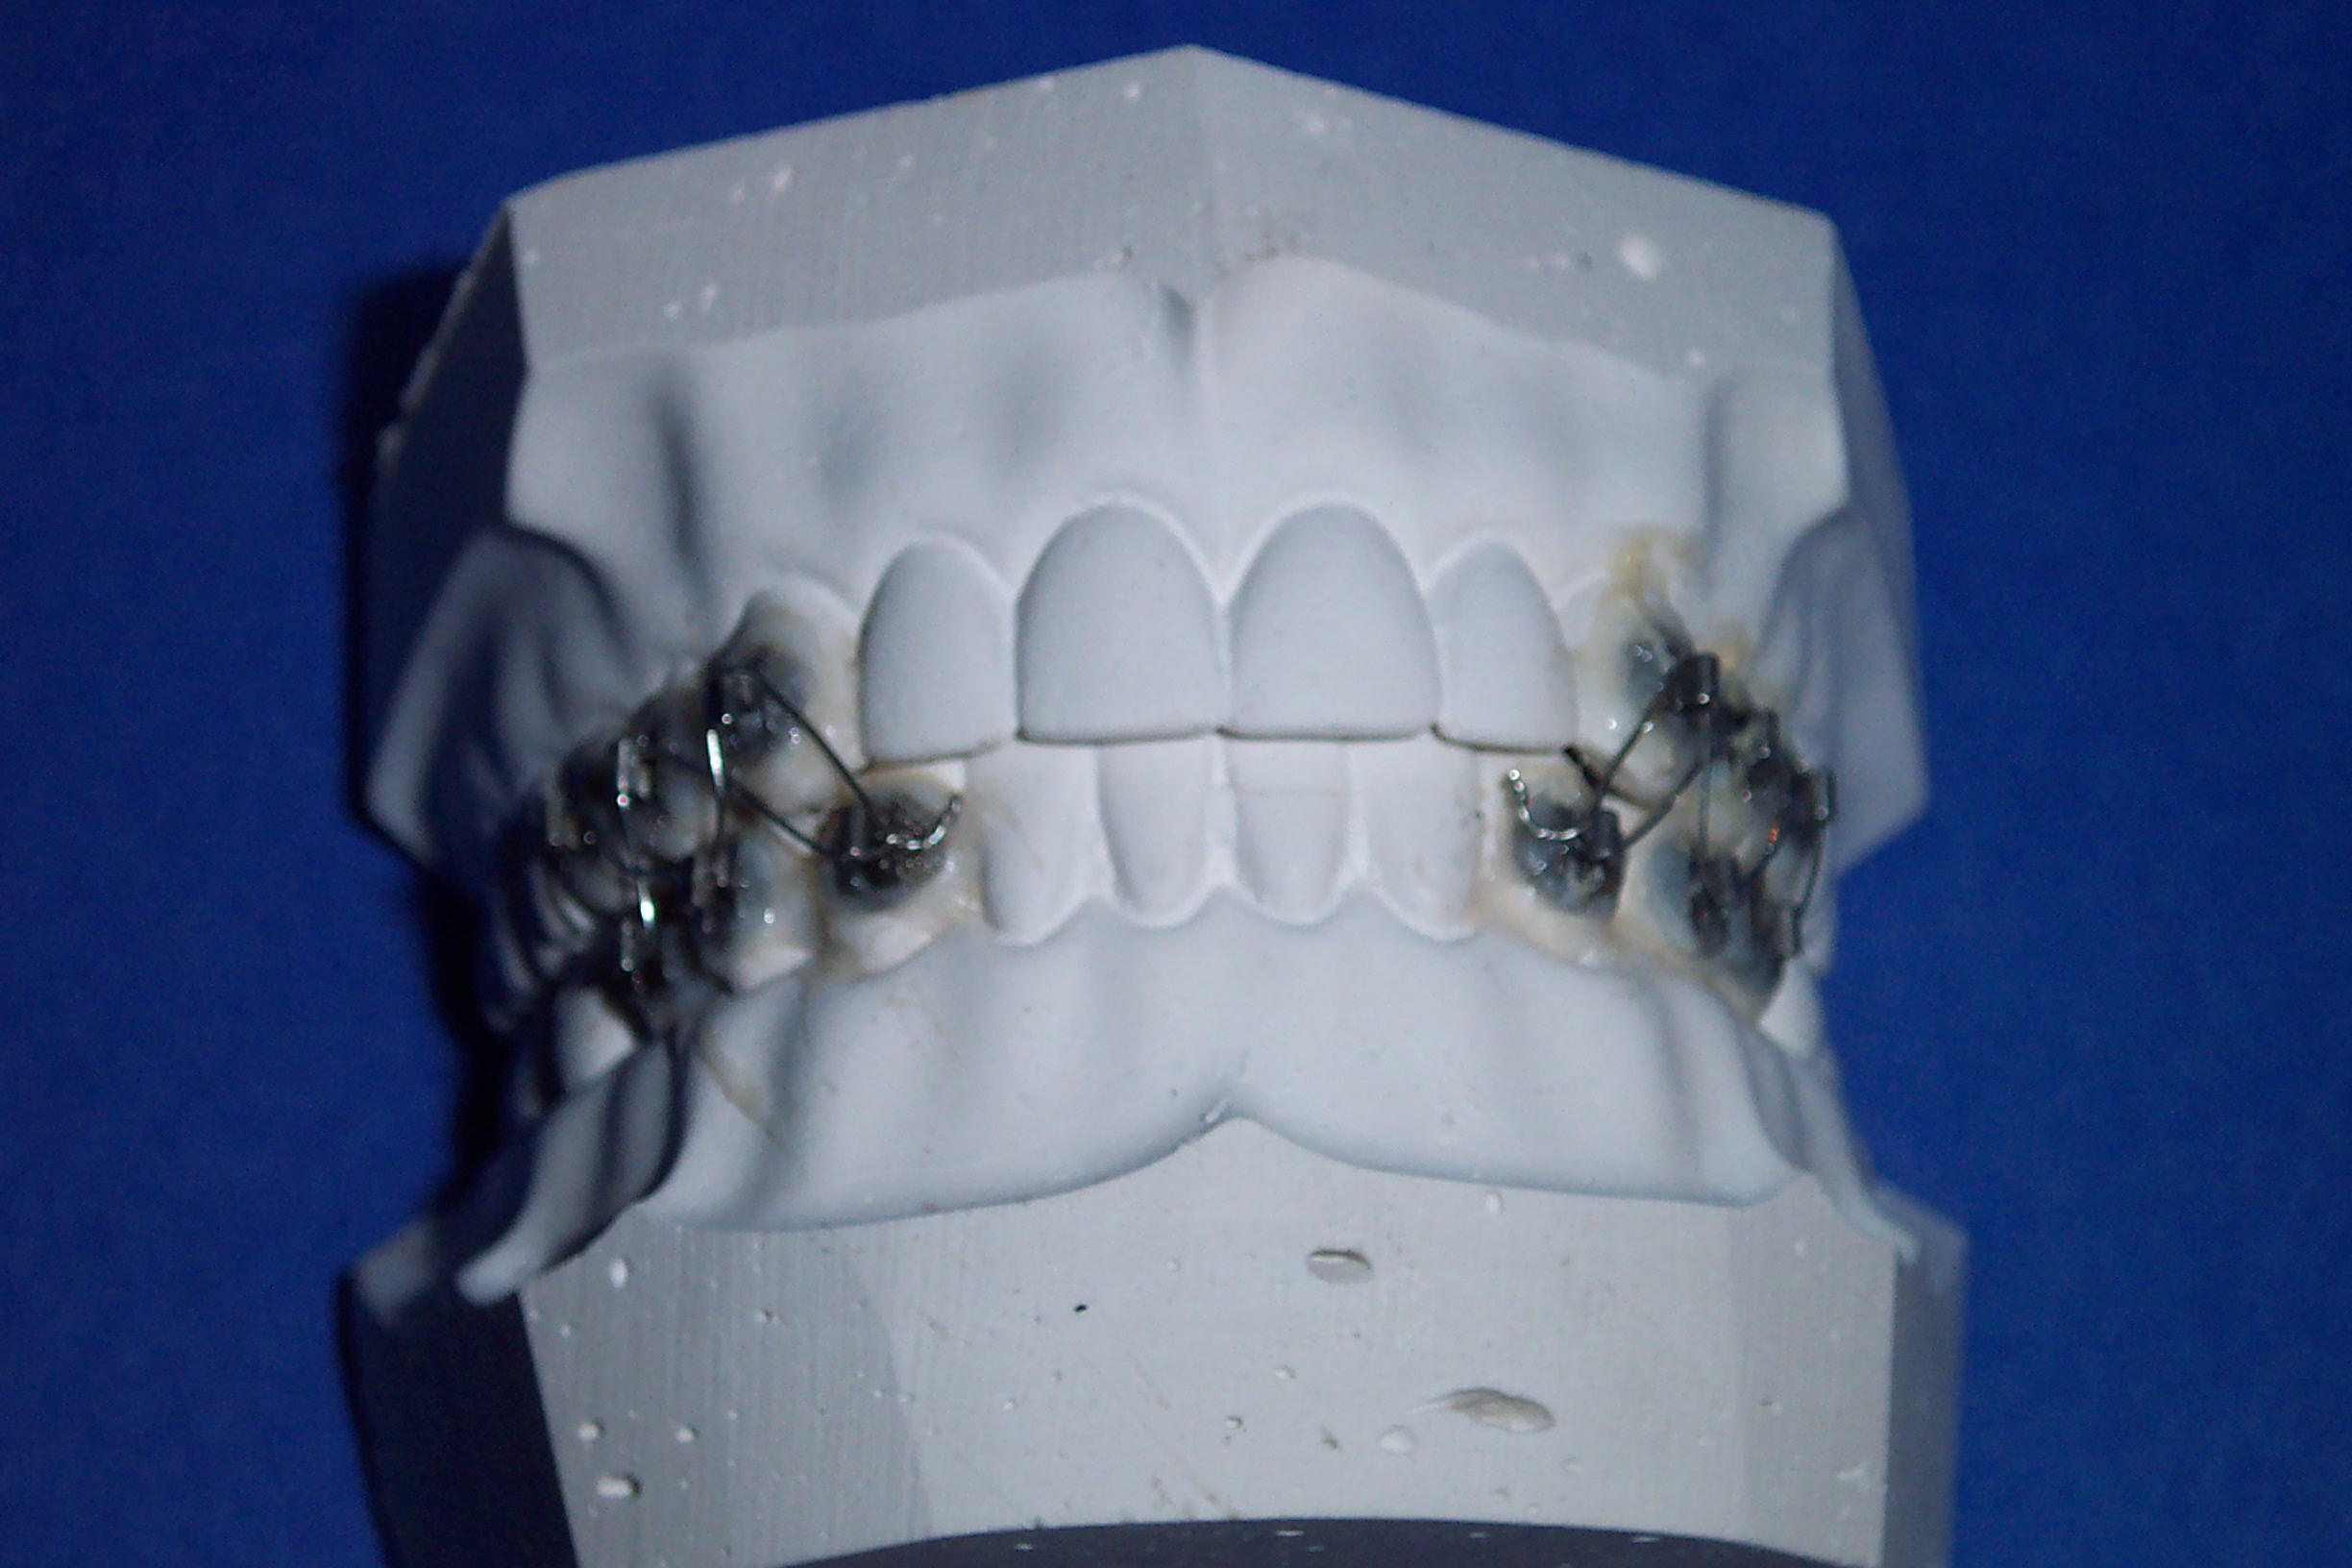 Jaw wiring Informed Consent